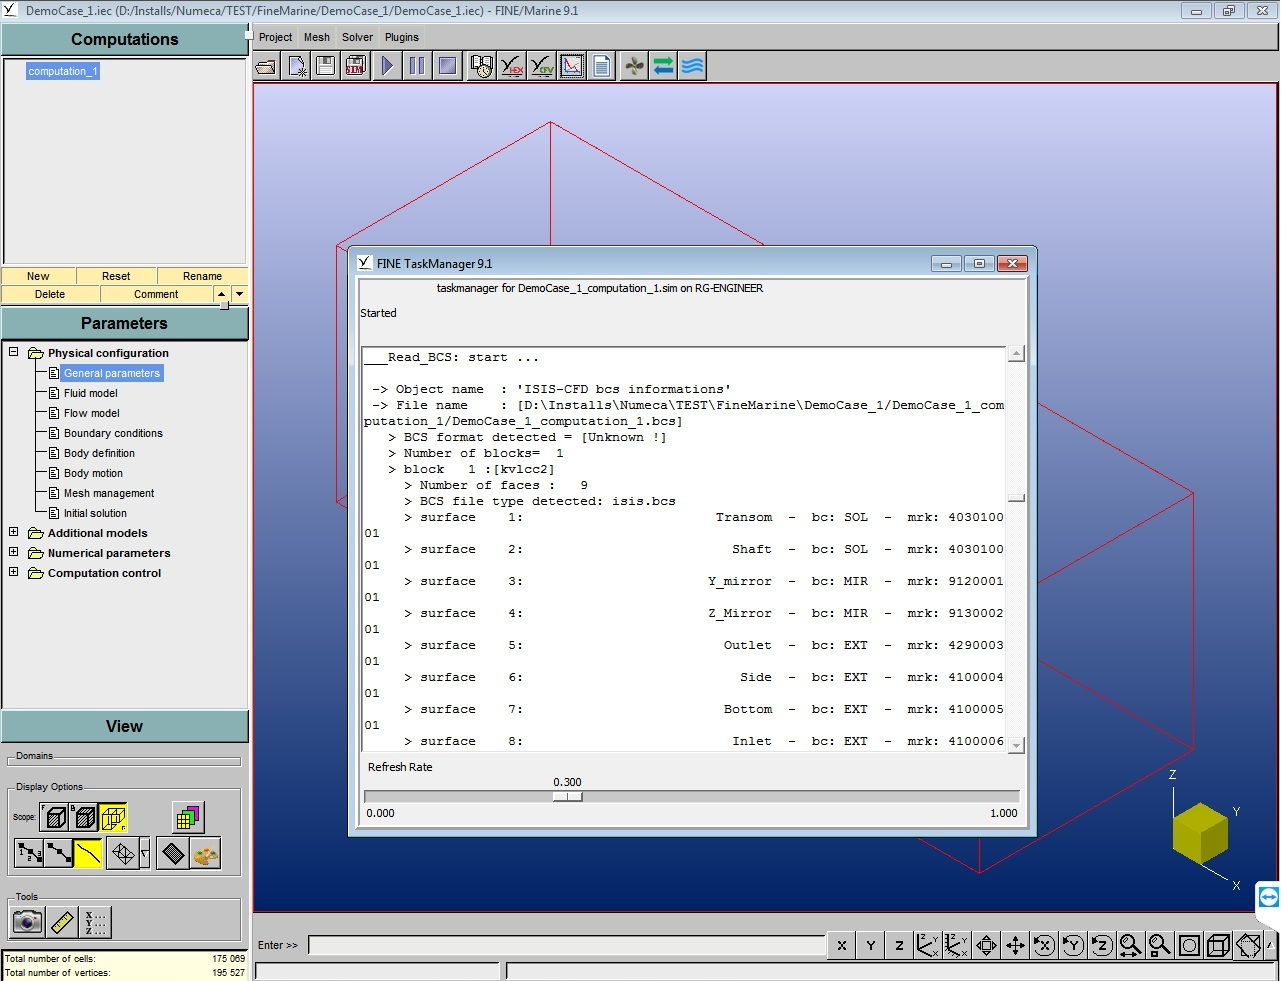 Working with NUMECA Fine-Marine 9.1 Win64 full license